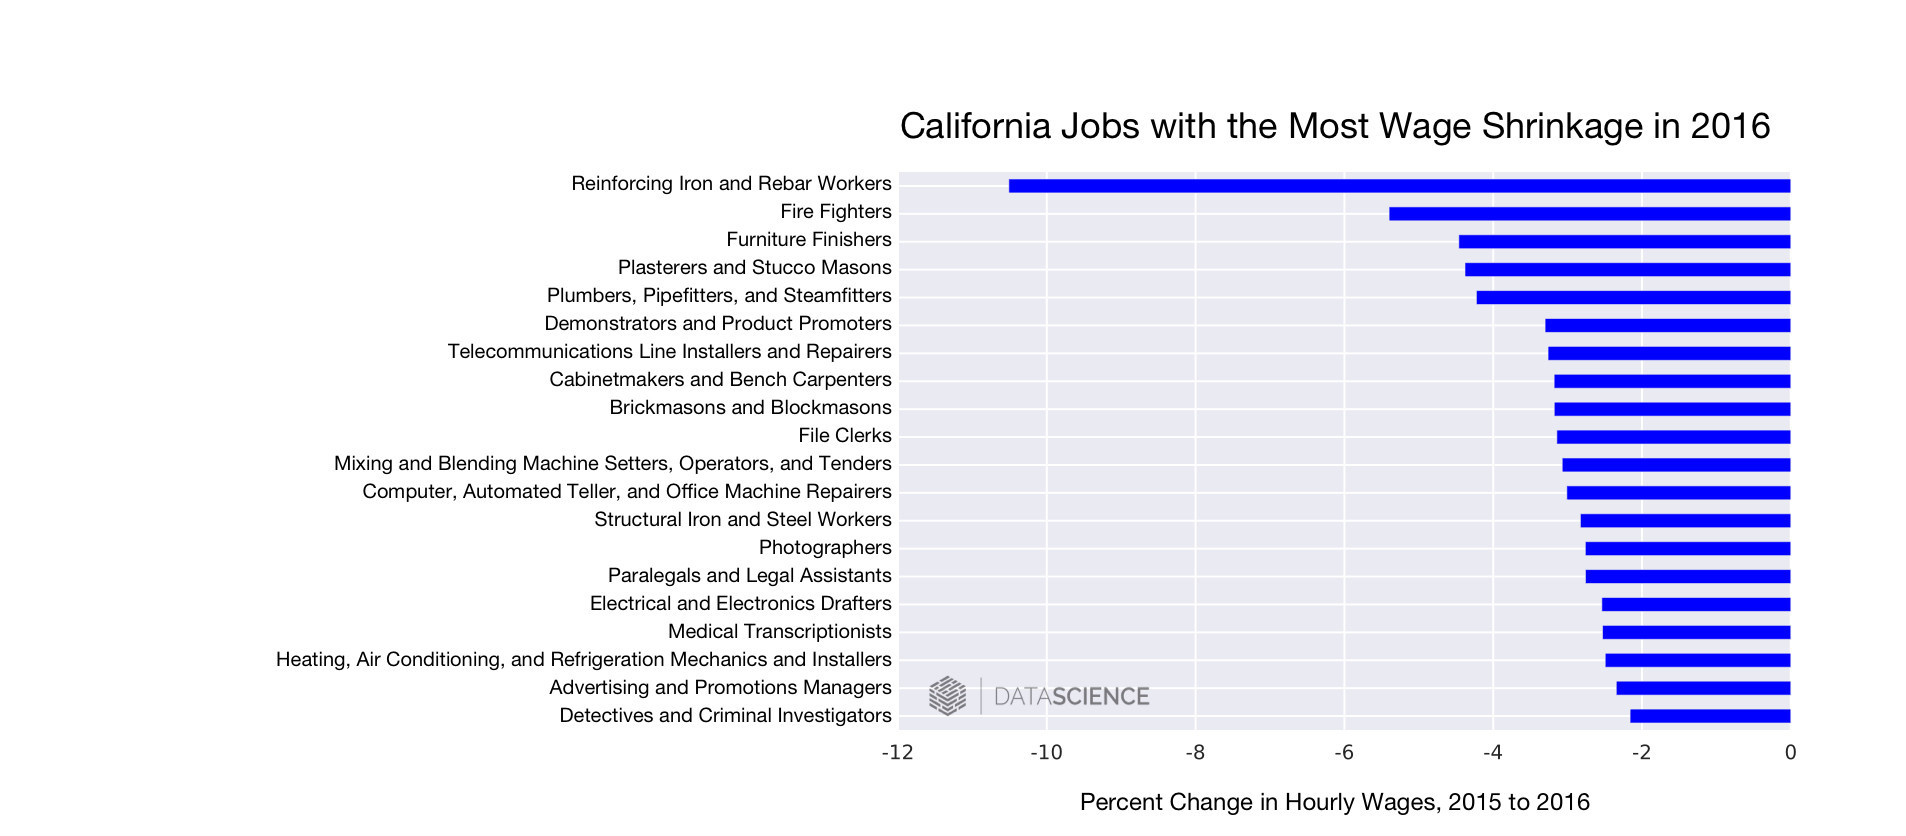 the labor day wage picture in california conclusion learn how the line graphs shows the percent change in hourly wage for the top and bottom five professions in 2016 and trace the hourly wage of these occupations